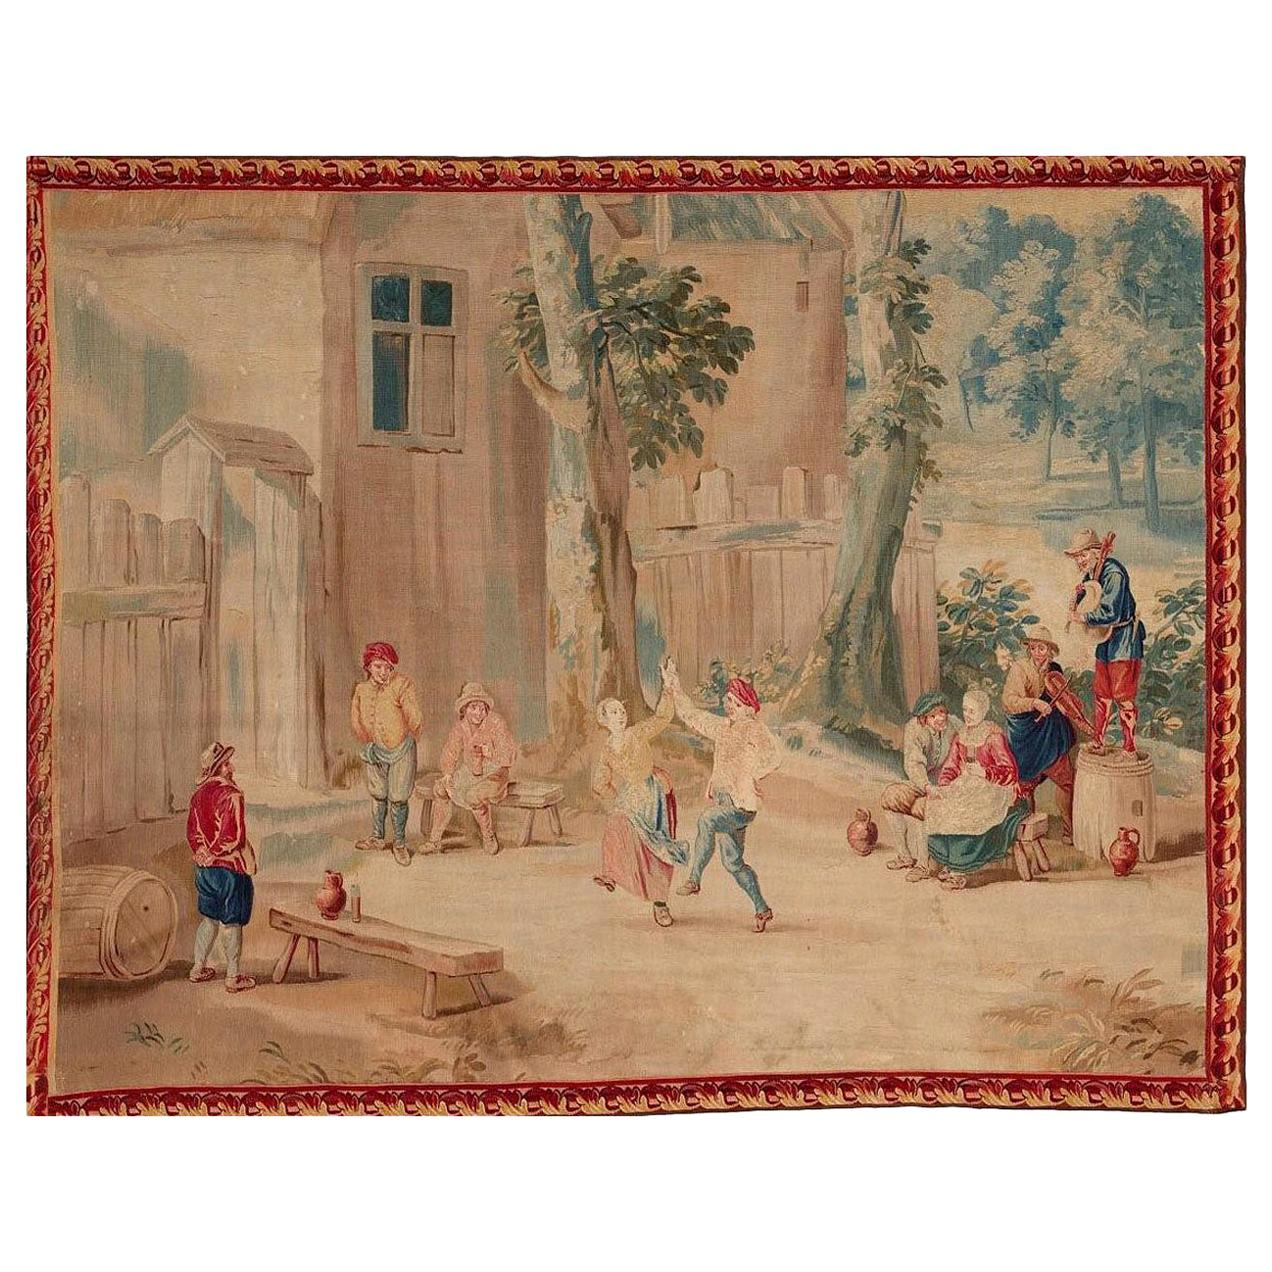 Brussels 18th Century Teniers Tapestry, circa 1780, 8' x 6'7